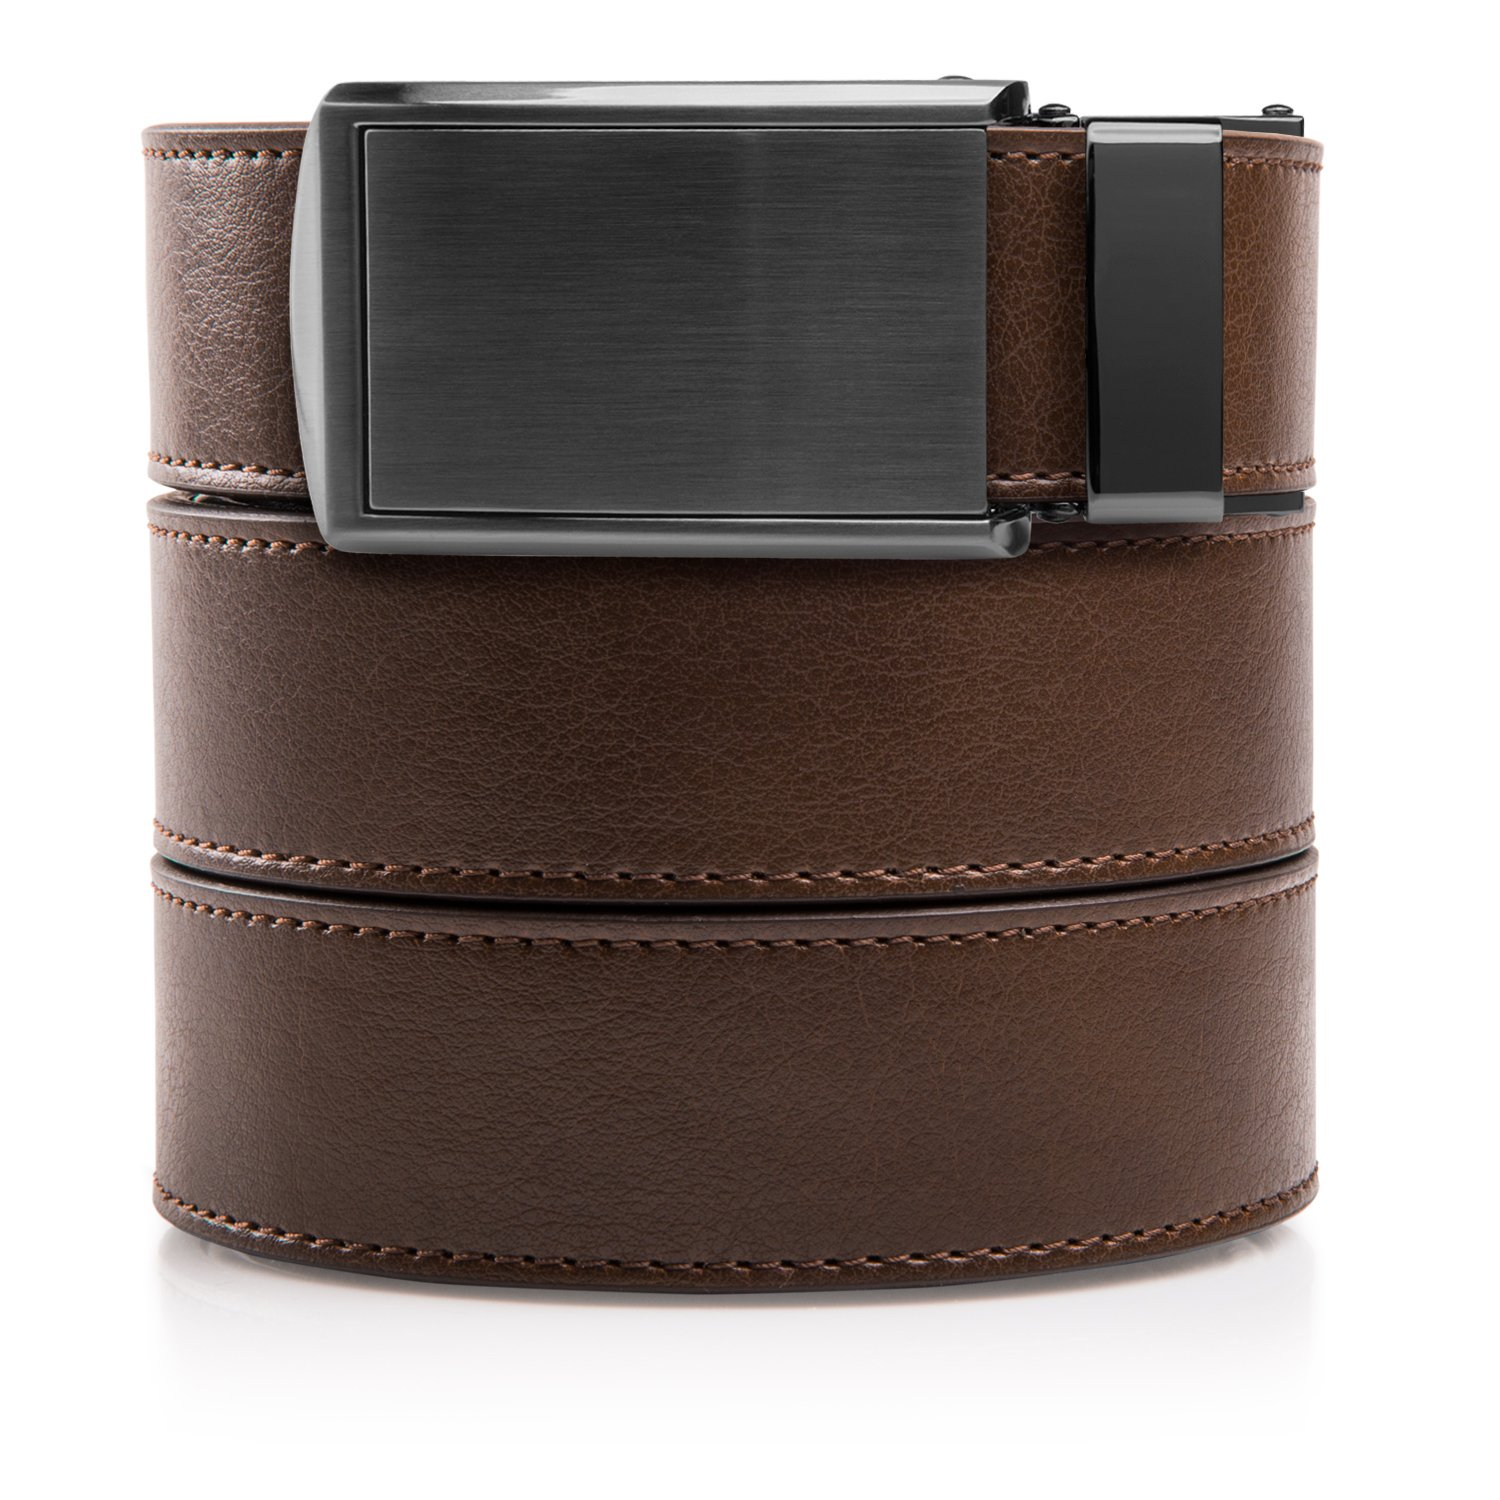 SlideBelts Men's Vegan Leather Belt without Holes - Gunmetal Buckle/Mocha Brown Leather (Trim-to-fit: Up to 48'' Waist)